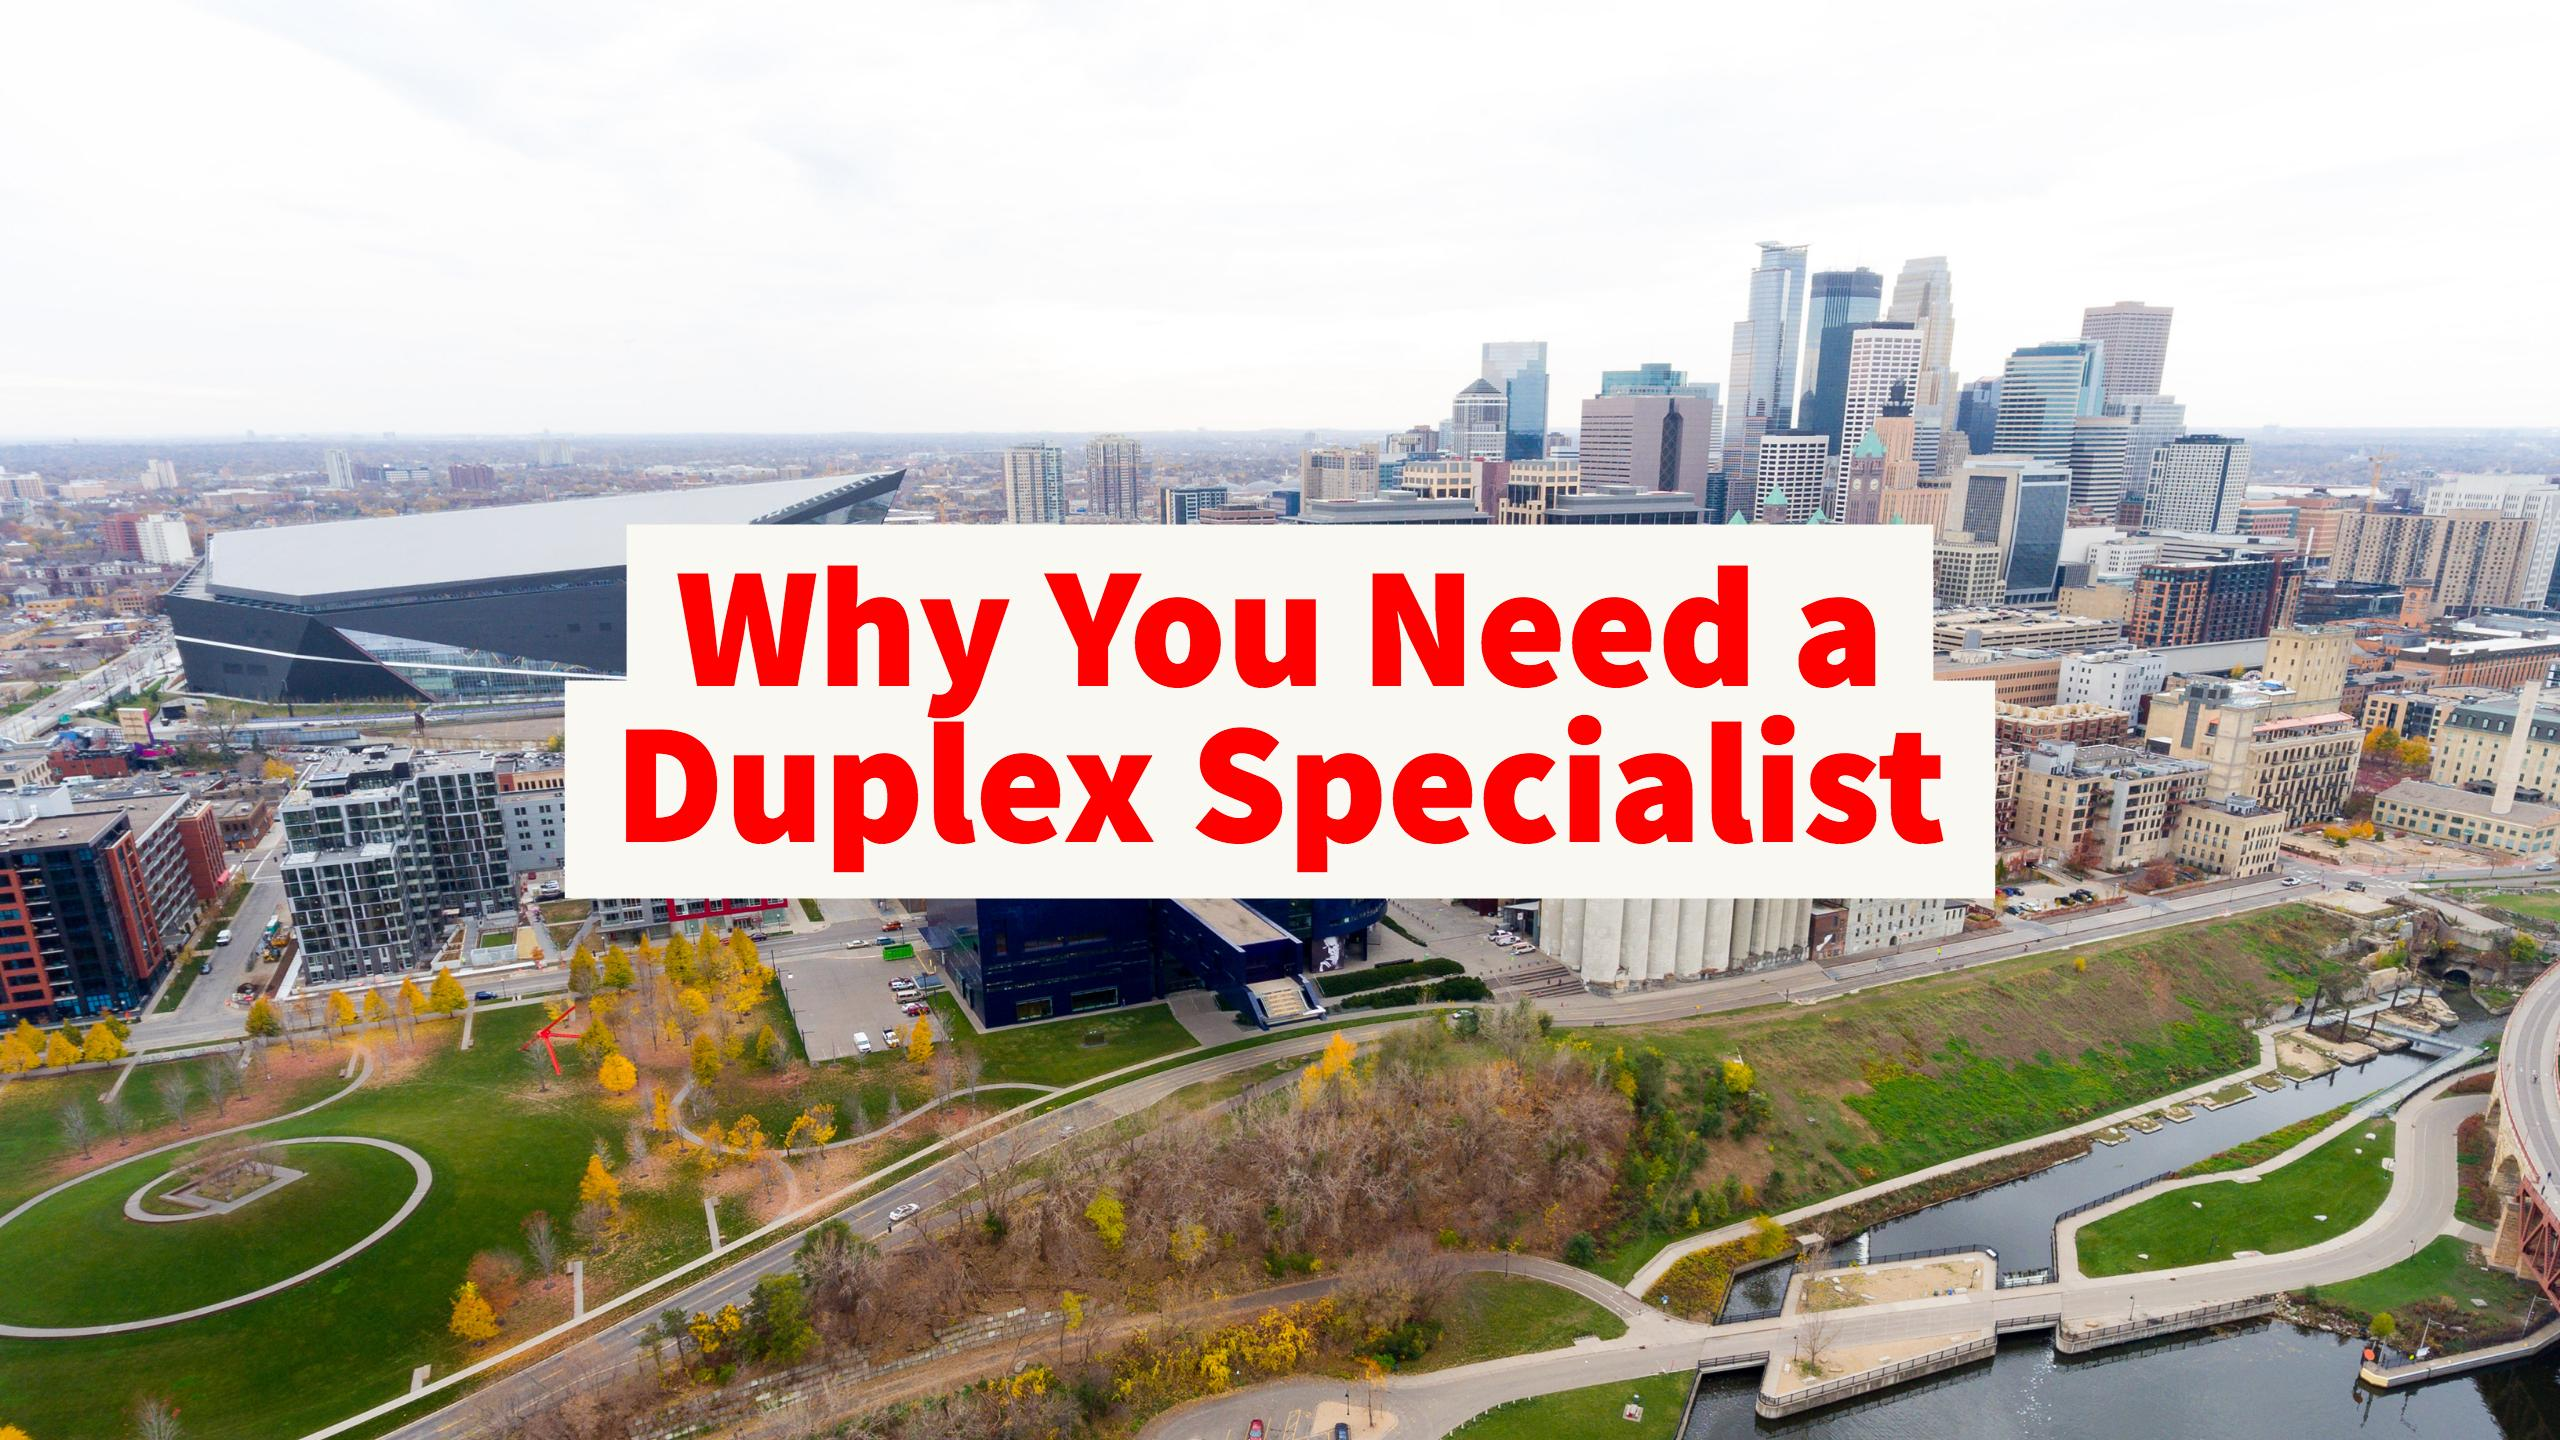 Skyline of city with text saying 'Why you need a duplex specialist'